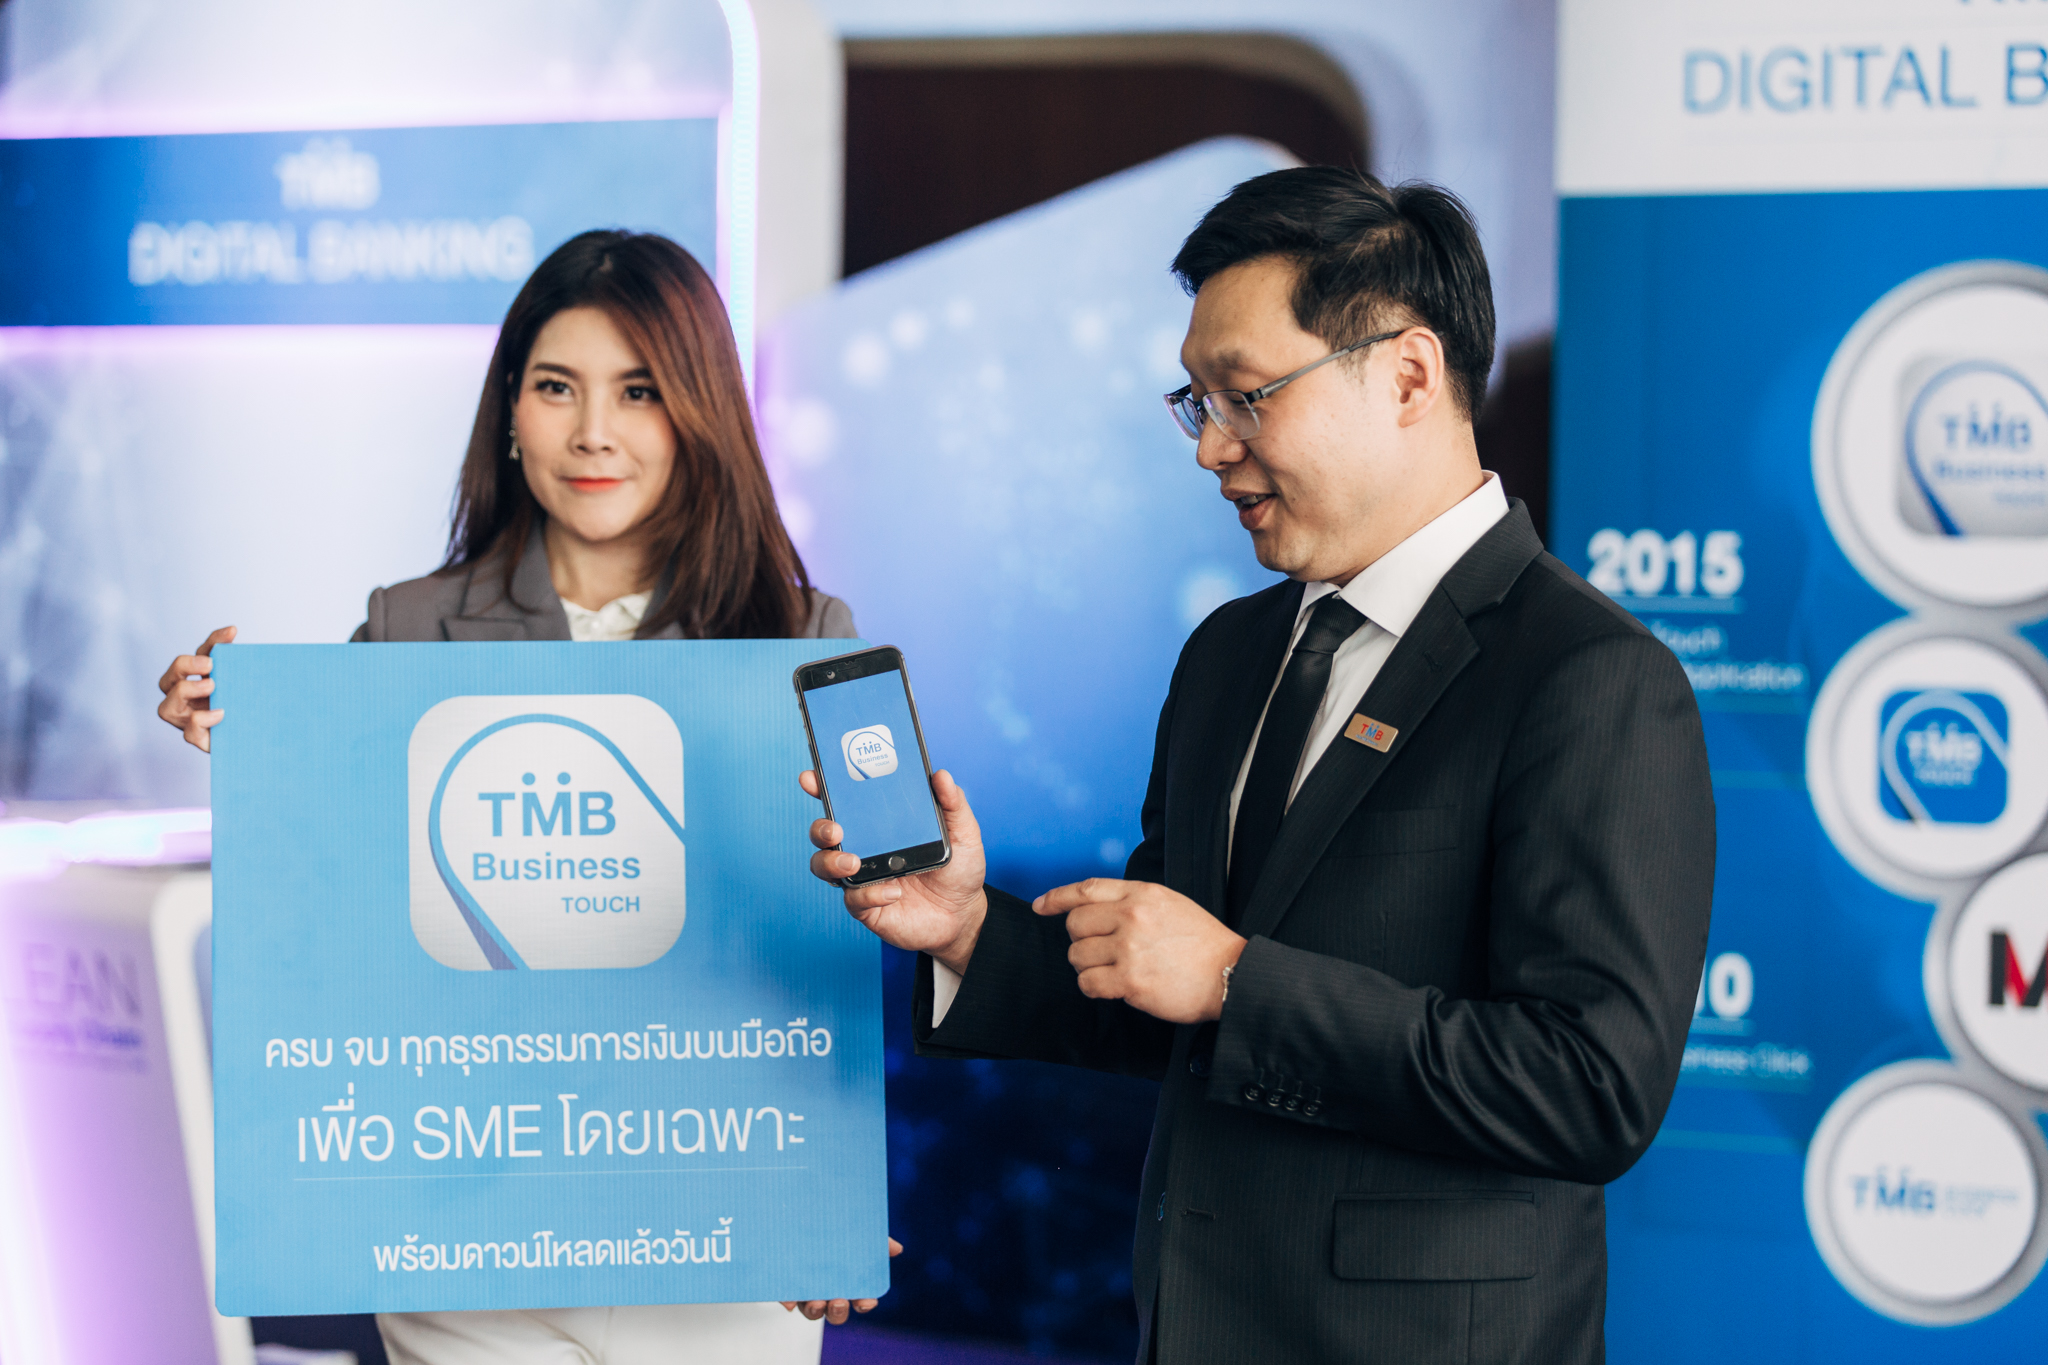 presenting tmb business touch